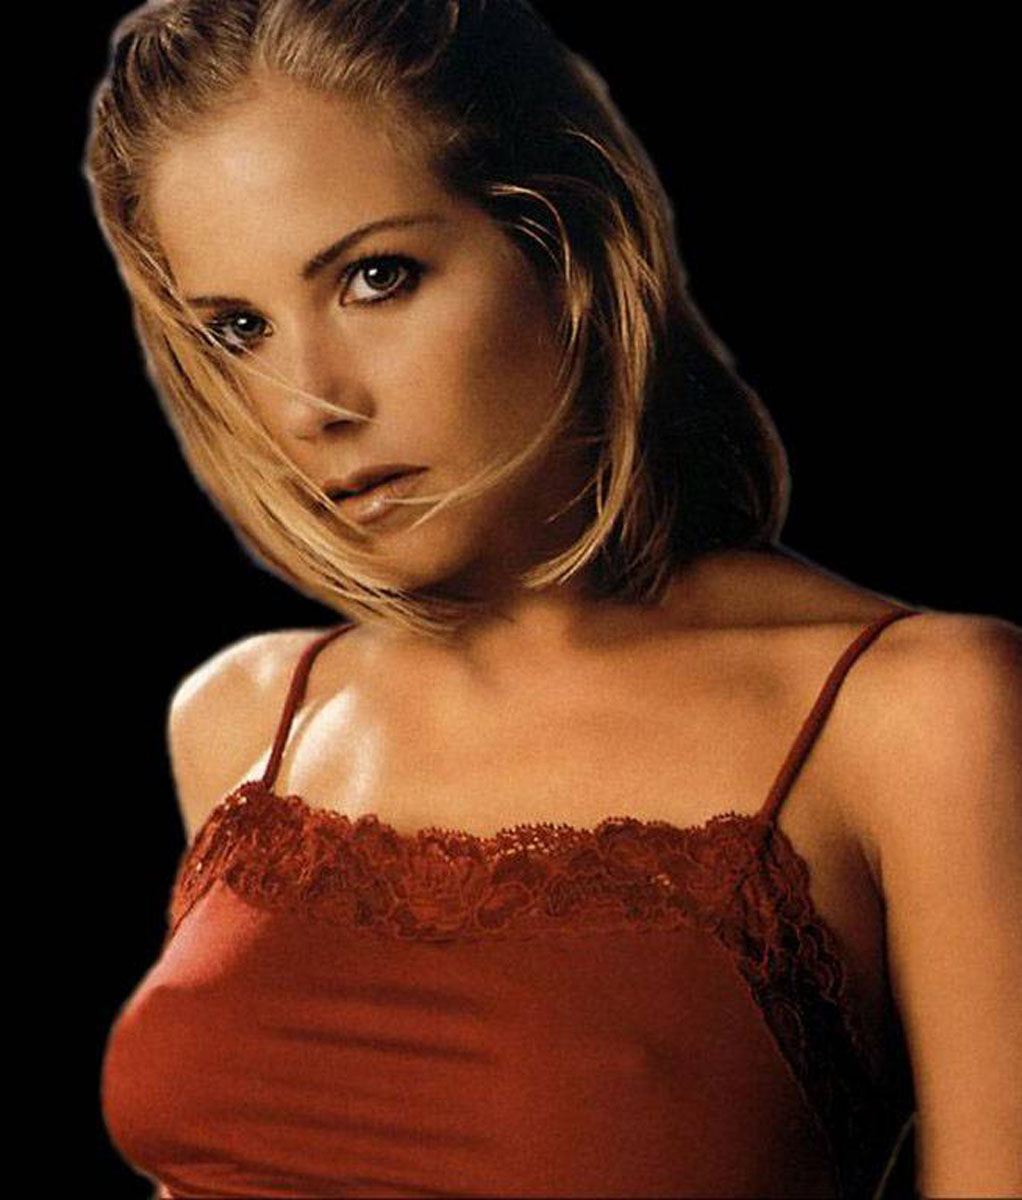 Sexy pics of christina applegate